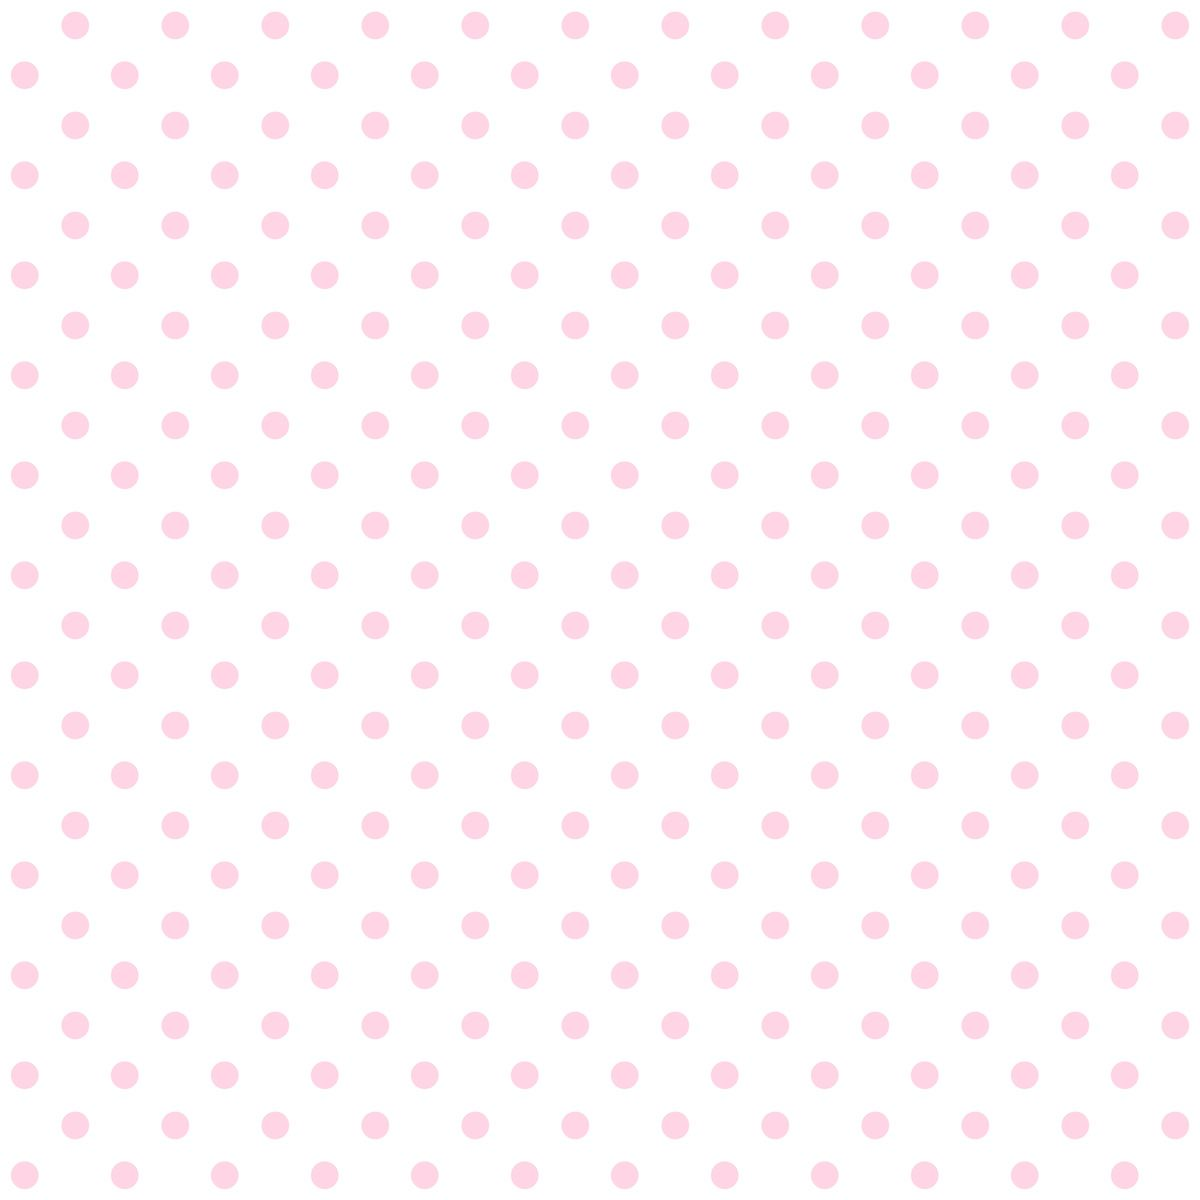 photograph about Free Printable Pattern Paper named absolutely free electronic polka dot sbooking papers - ausdruckbare